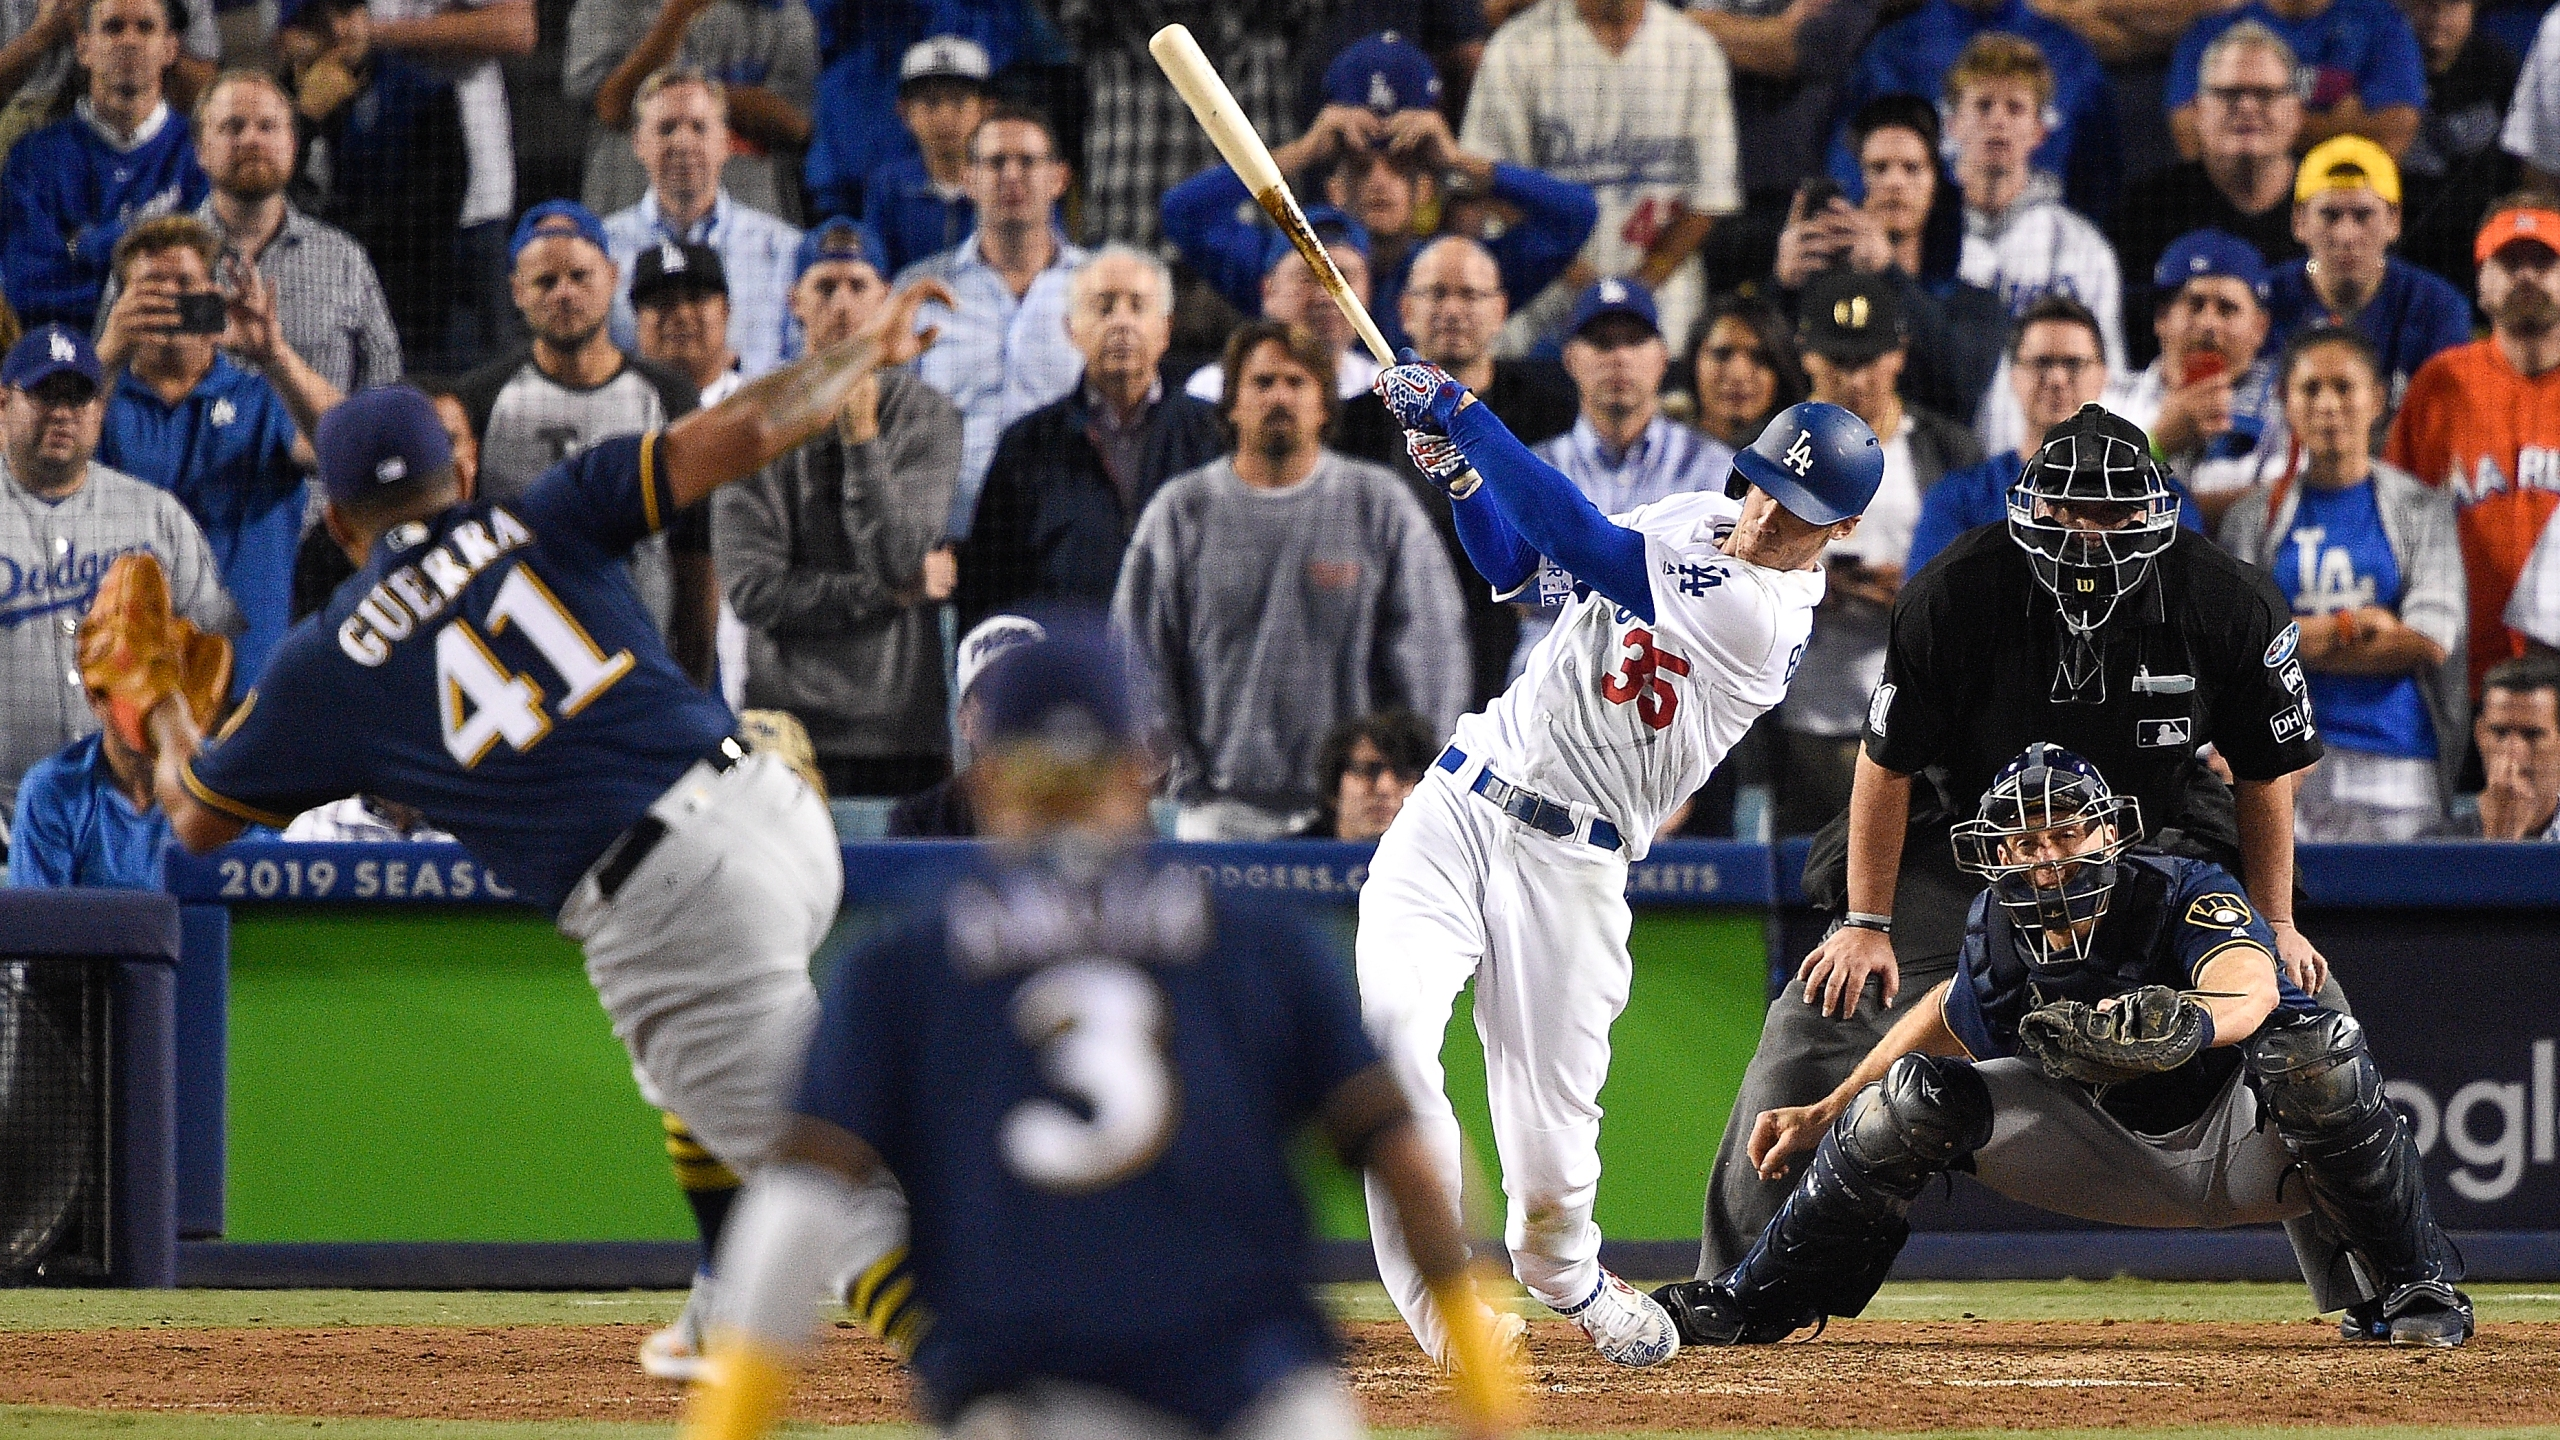 Cody Bellinger of the Los Angeles Dodgers hits a walk-off single in the thirteenth inning against the Milwaukee Brewers to win Game Four of the National League Championship Series Dodger Stadium on Oct. 16, 2018. (Credit: Kevork Djansezian/Getty Images)